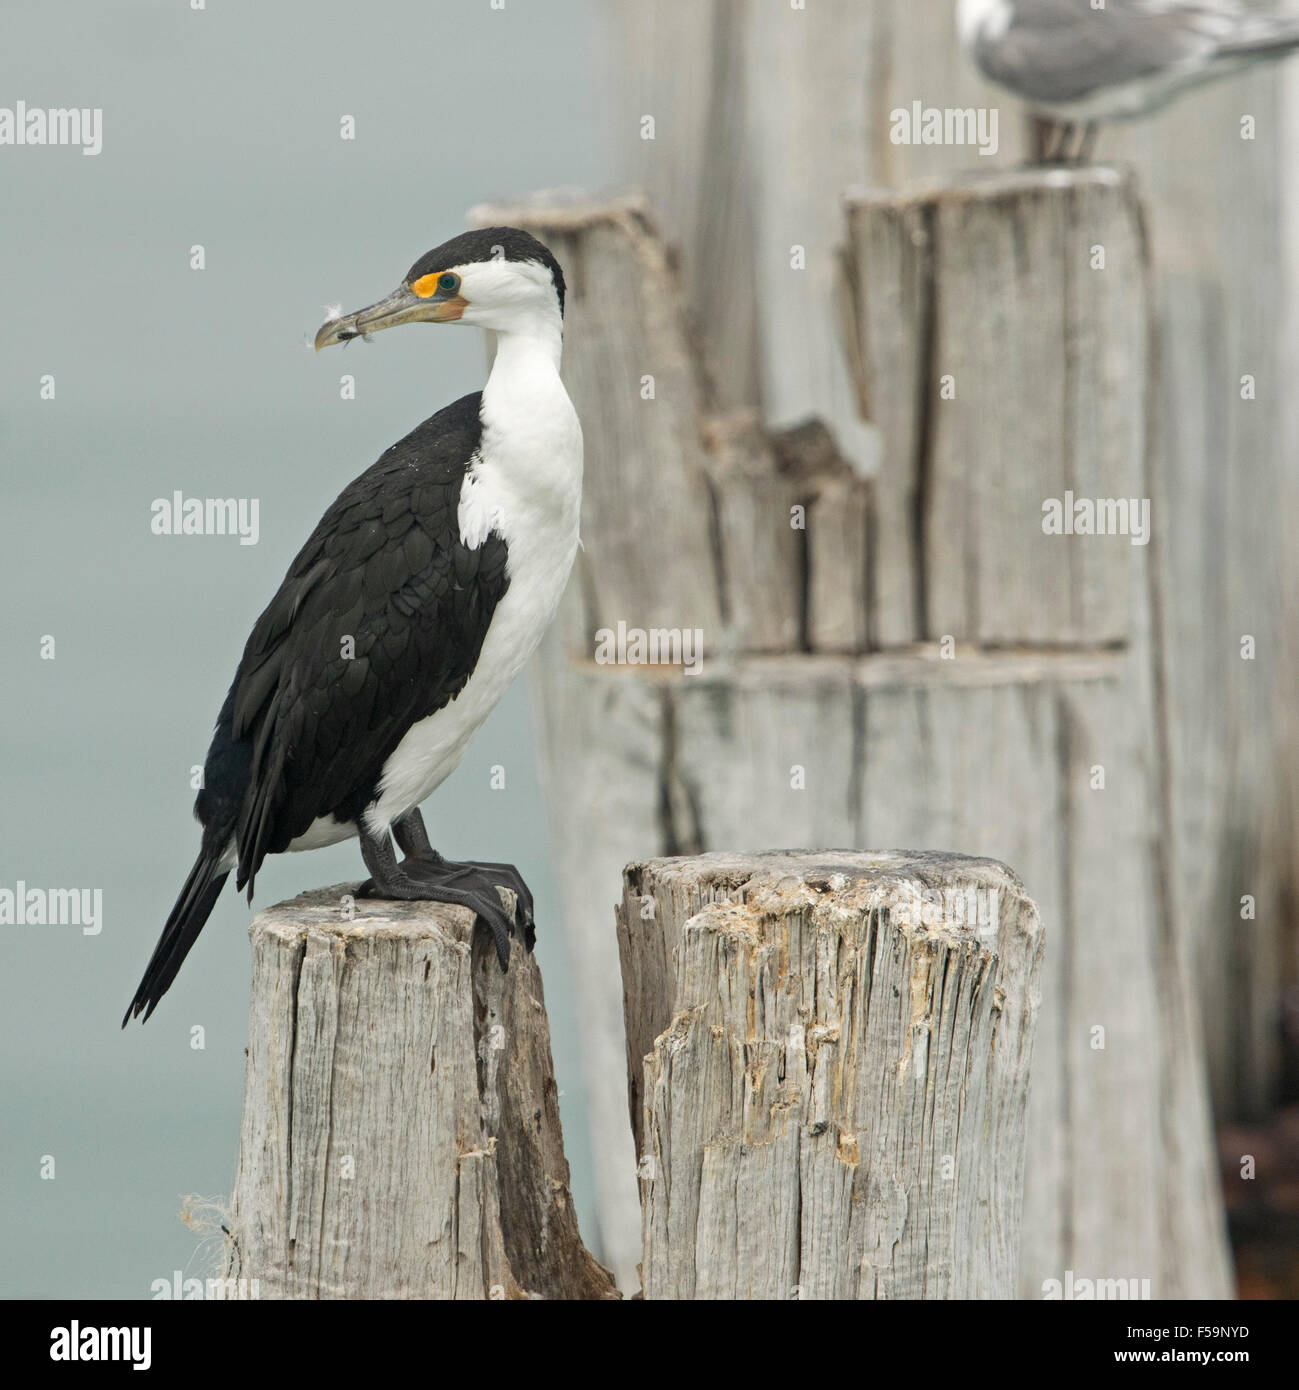 Pied cormorant, Phalacrocorax varius, with immaculate black & white plumage, perched on weathered wooden jetty post Stock Photo